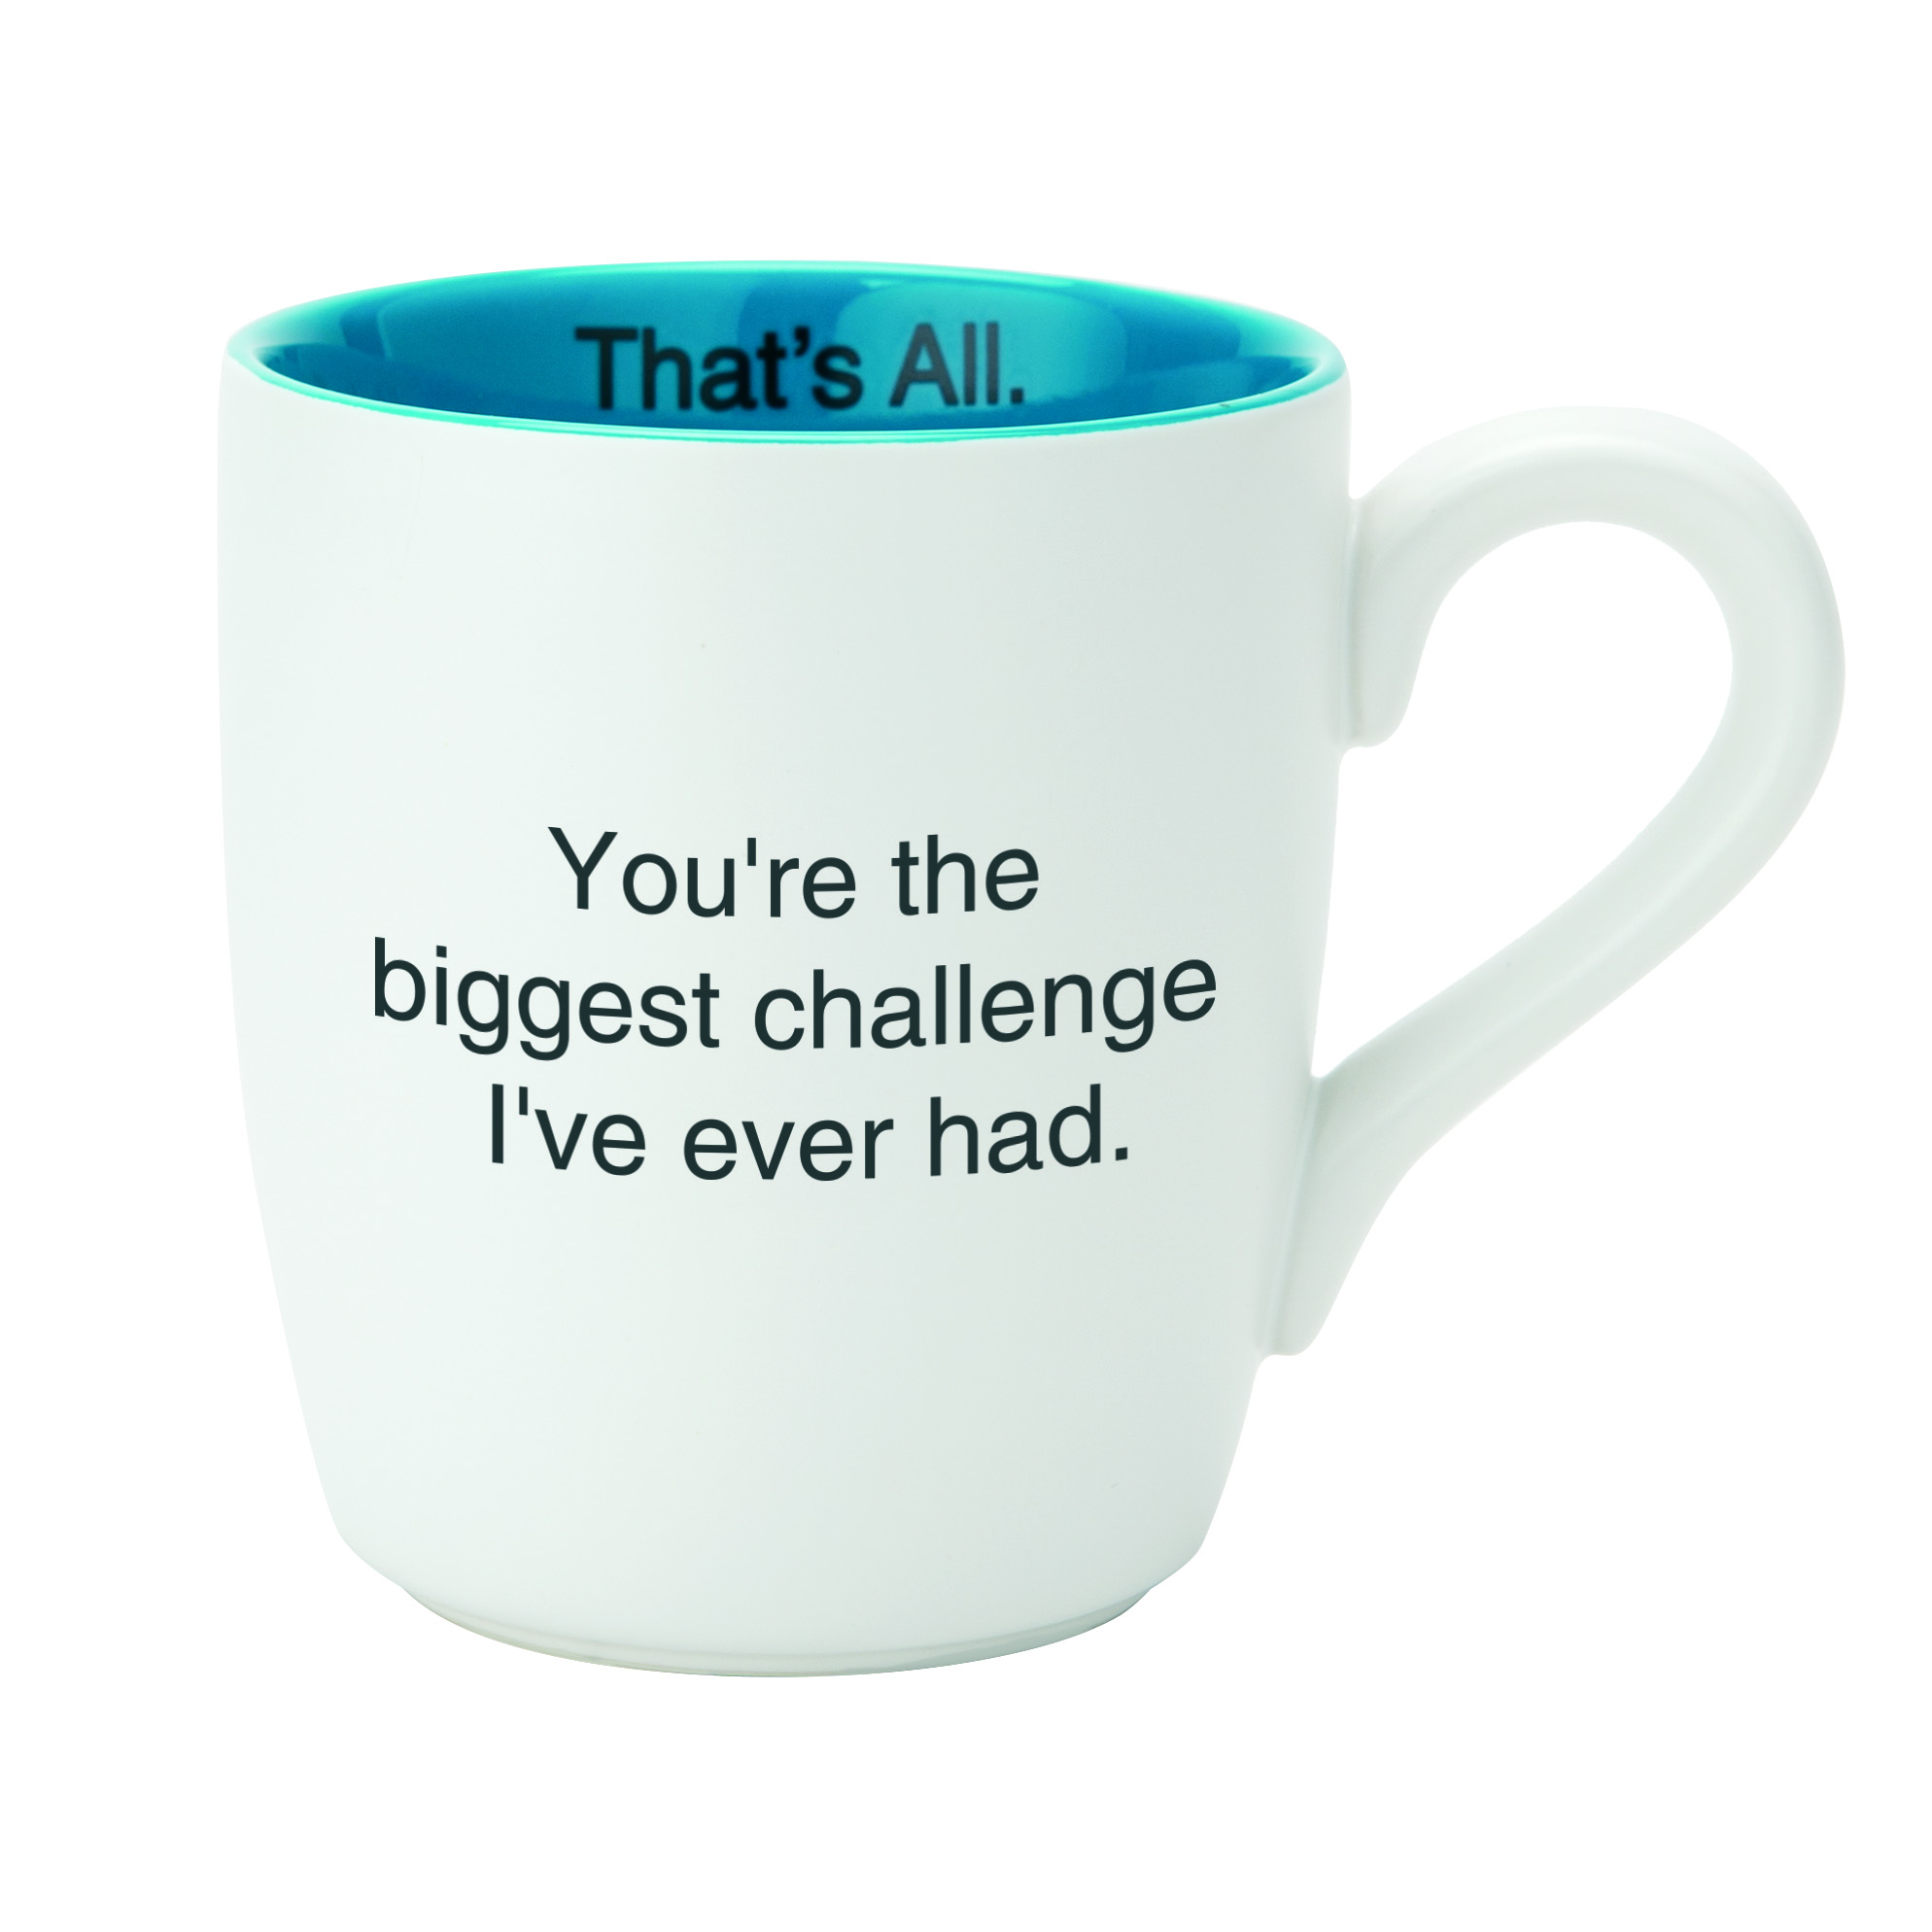 That's All® Mug - Biggest Challenge